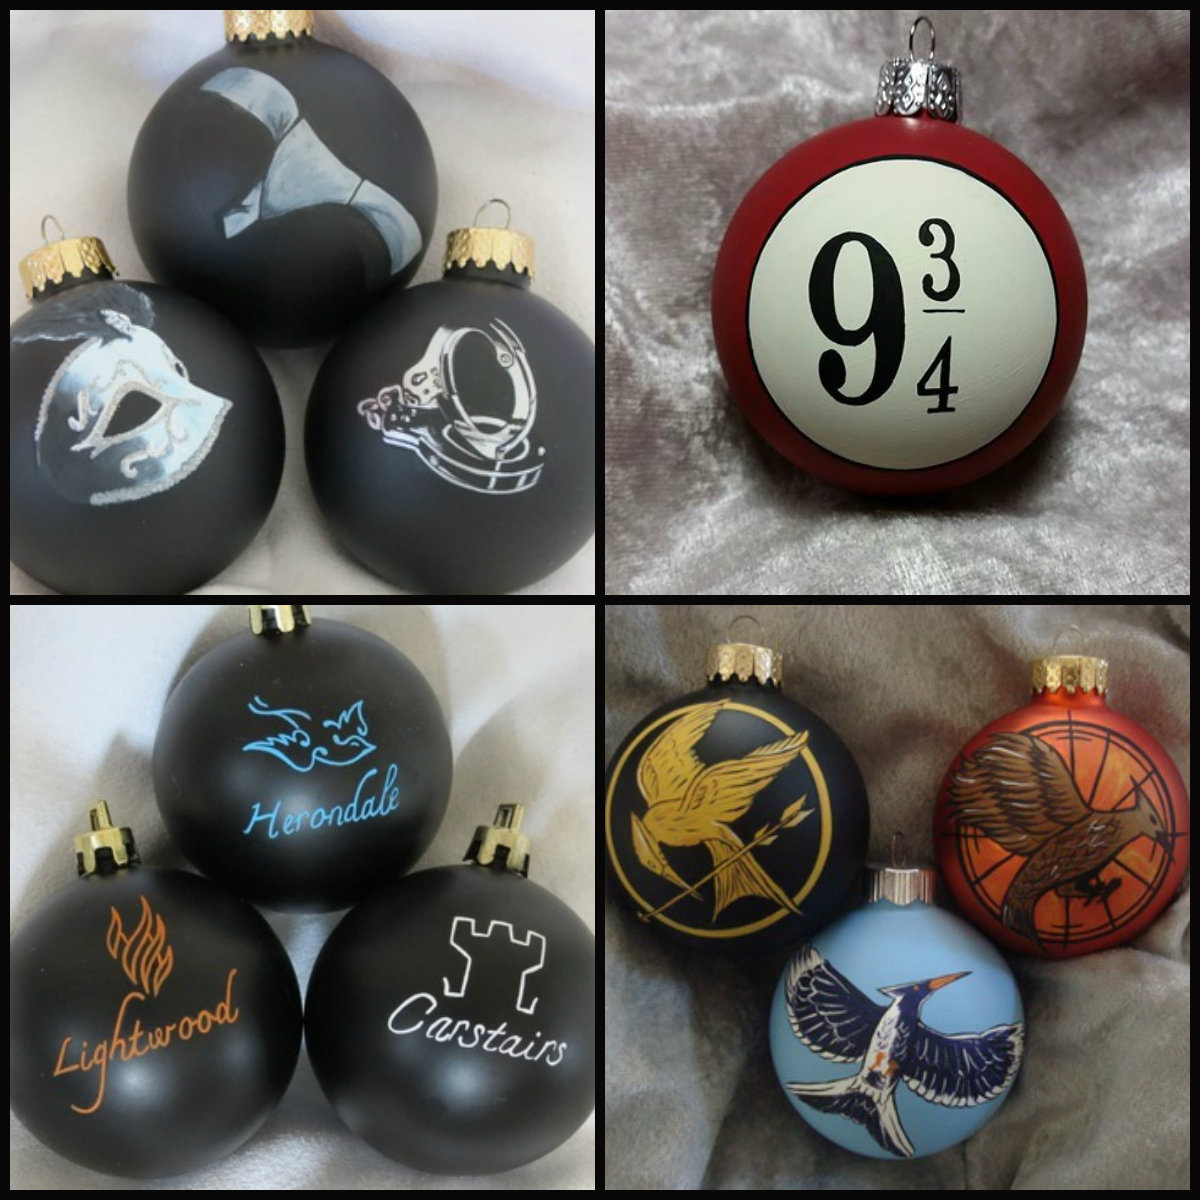 Harry potter christmas ornament - The Hunger Games Fifty Shades Harry Potter The Mortal Instruments Ornaments Obsessions Are A Speciality For Totally Obsessed And Why Would It Not Extend To